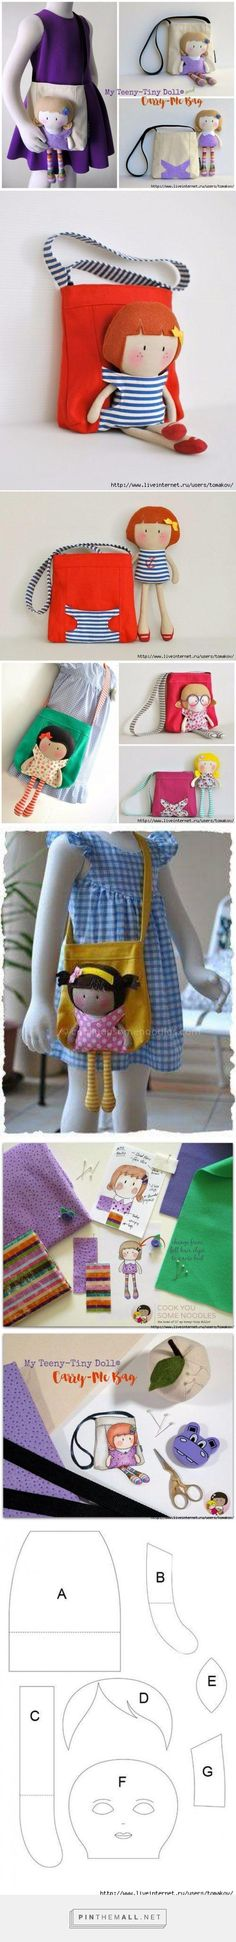 instructions to doll patterns Oyuncak bez bebek yapmak ablonlu anlatm olarak bu yazmda yer alyor. Sizde ok gzel ve elenceli Fabric Crafts, Sewing Crafts, Sewing Projects, Sewing Ideas, Diy Crafts, Sewing For Kids, Diy For Kids, Basic Sewing, Doll Patterns